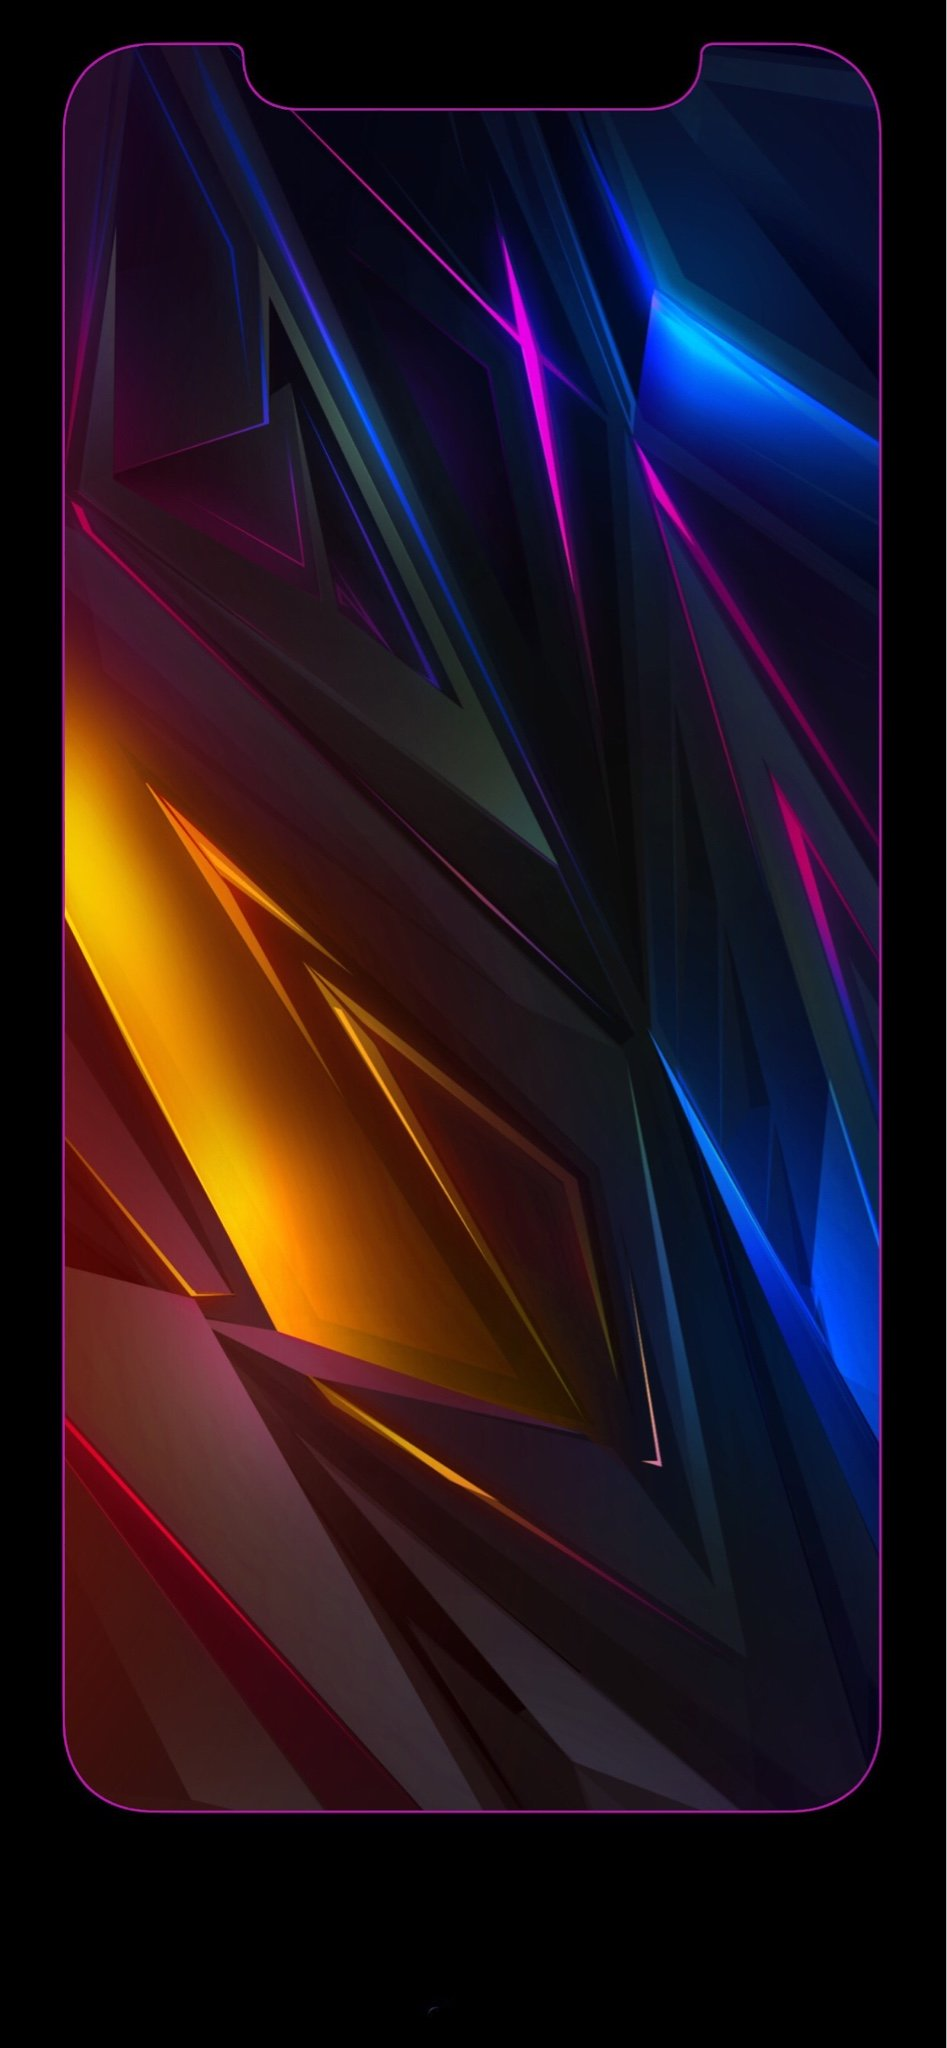 Iphone Xs Wallpaper Posted By John Thompson